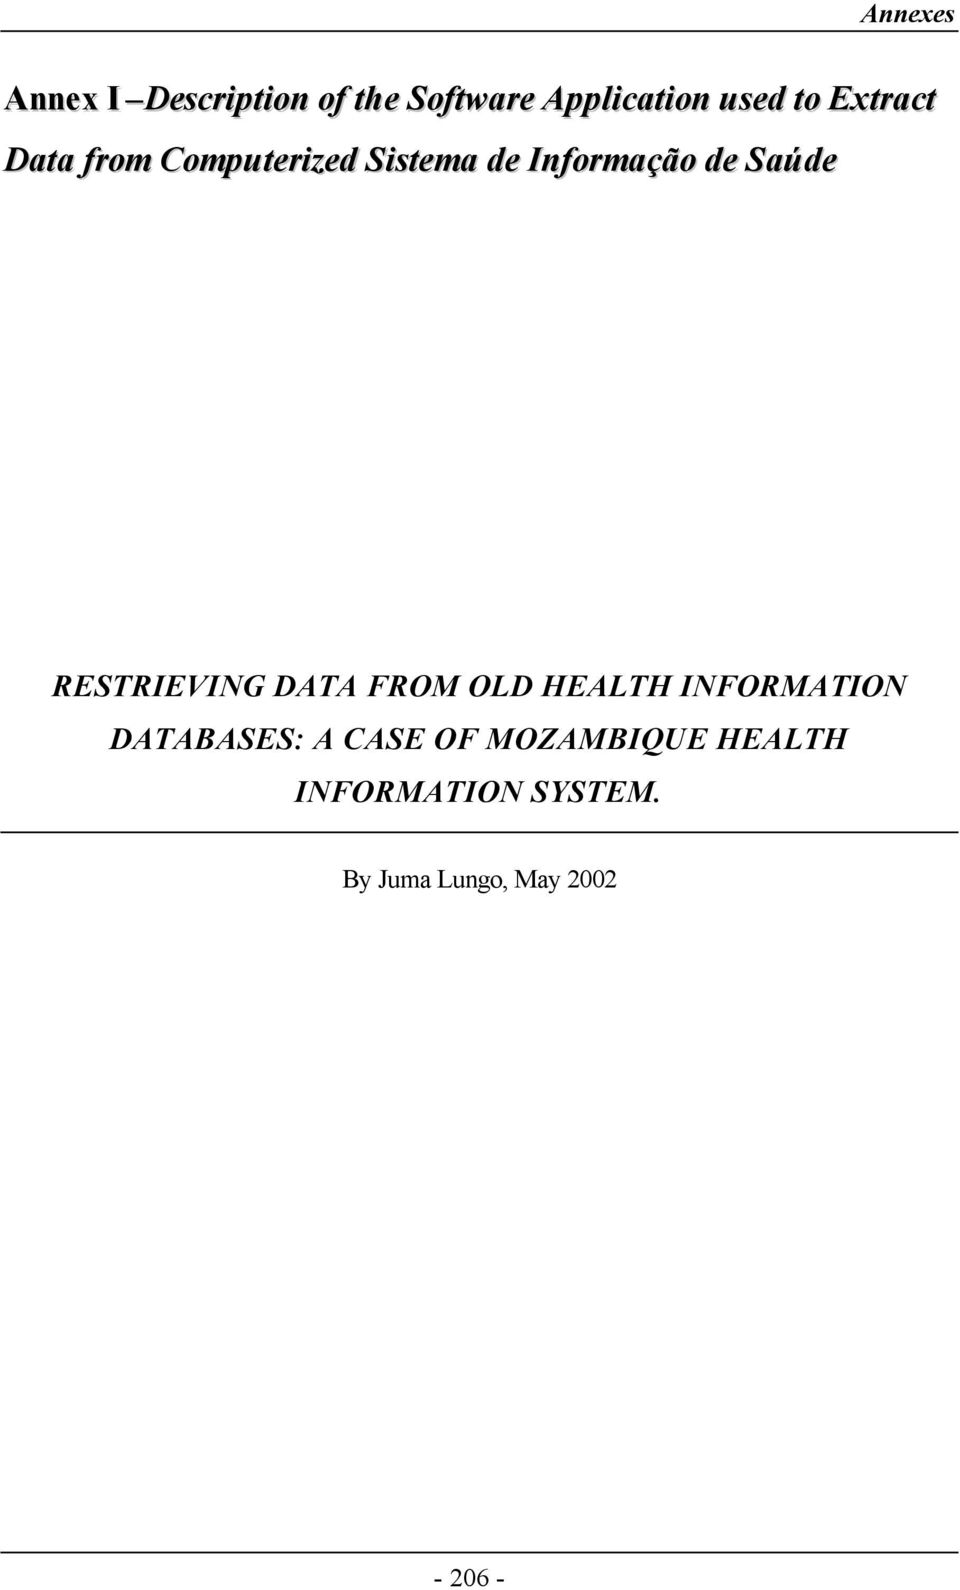 RESTRIEVING DATA FROM OLD HEALTH INFORMATION DATABASES: A CASE